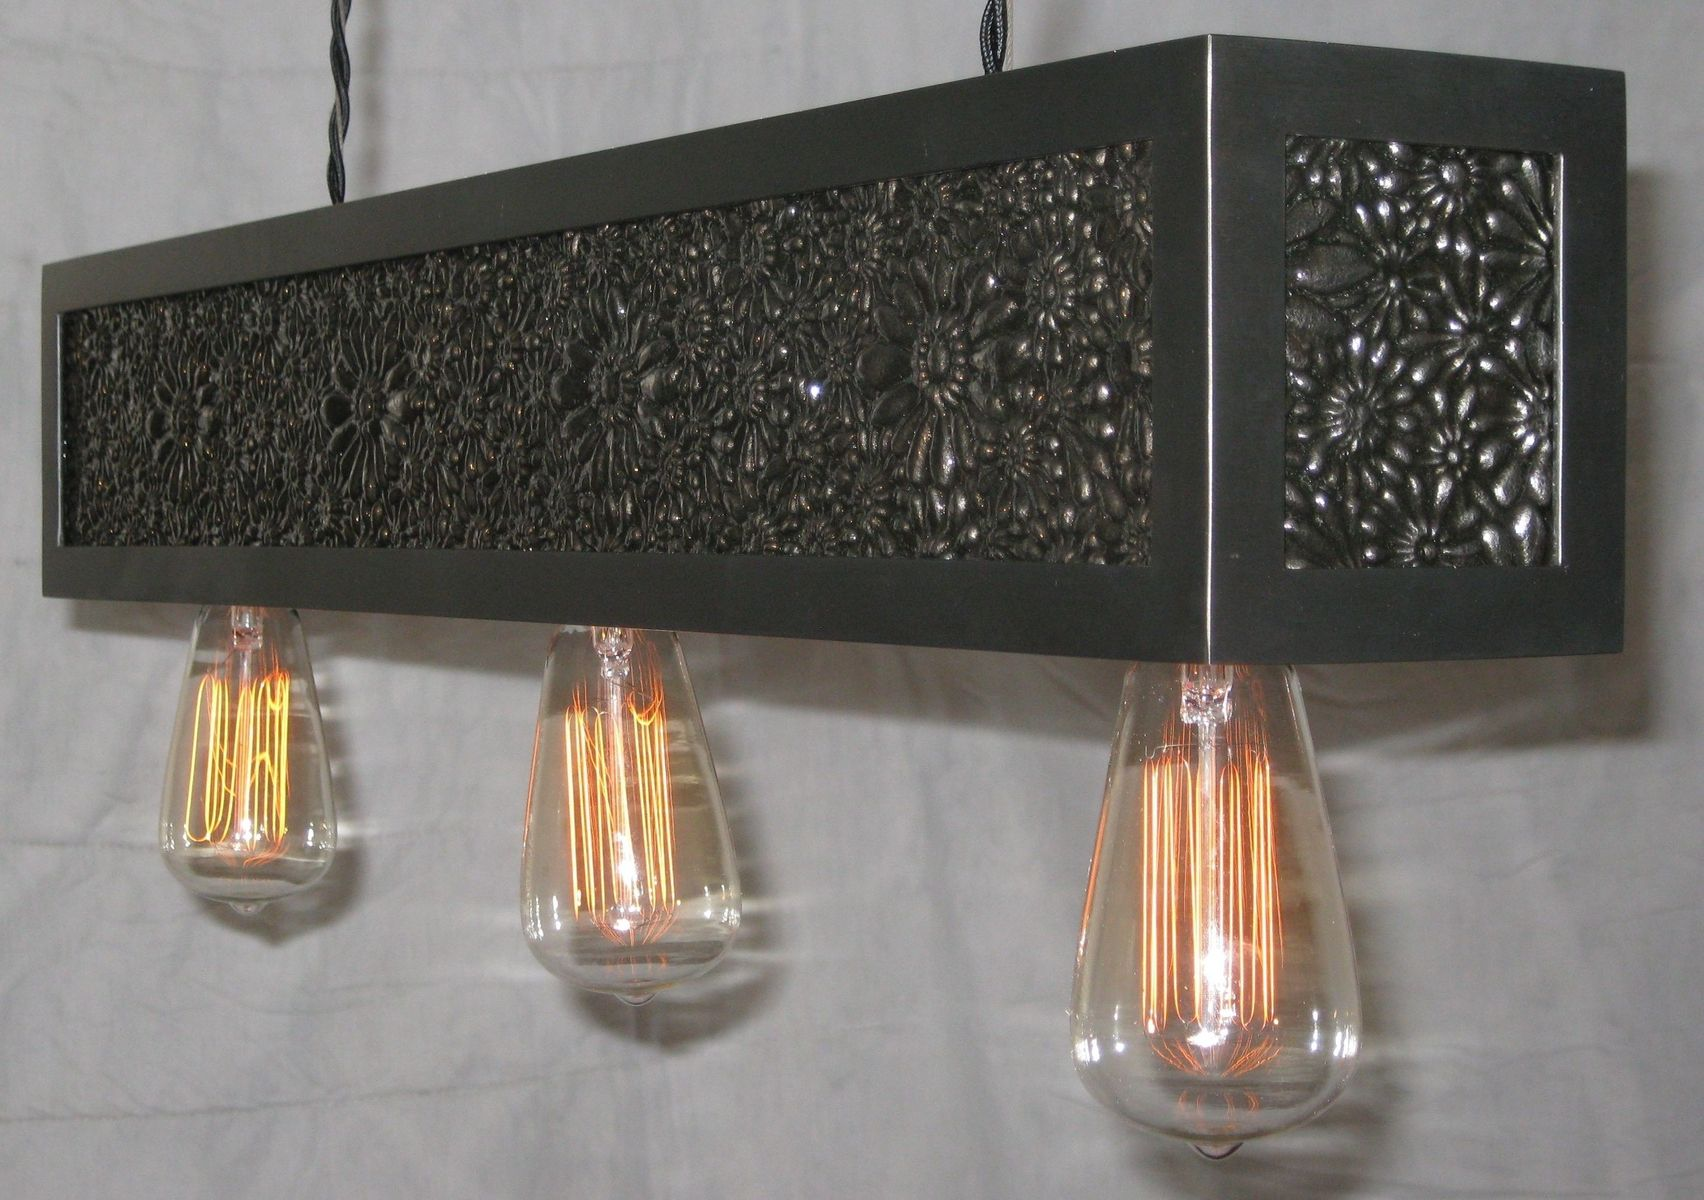 Hand Made Cast Iron And Steel Light Fixture By Bader Art